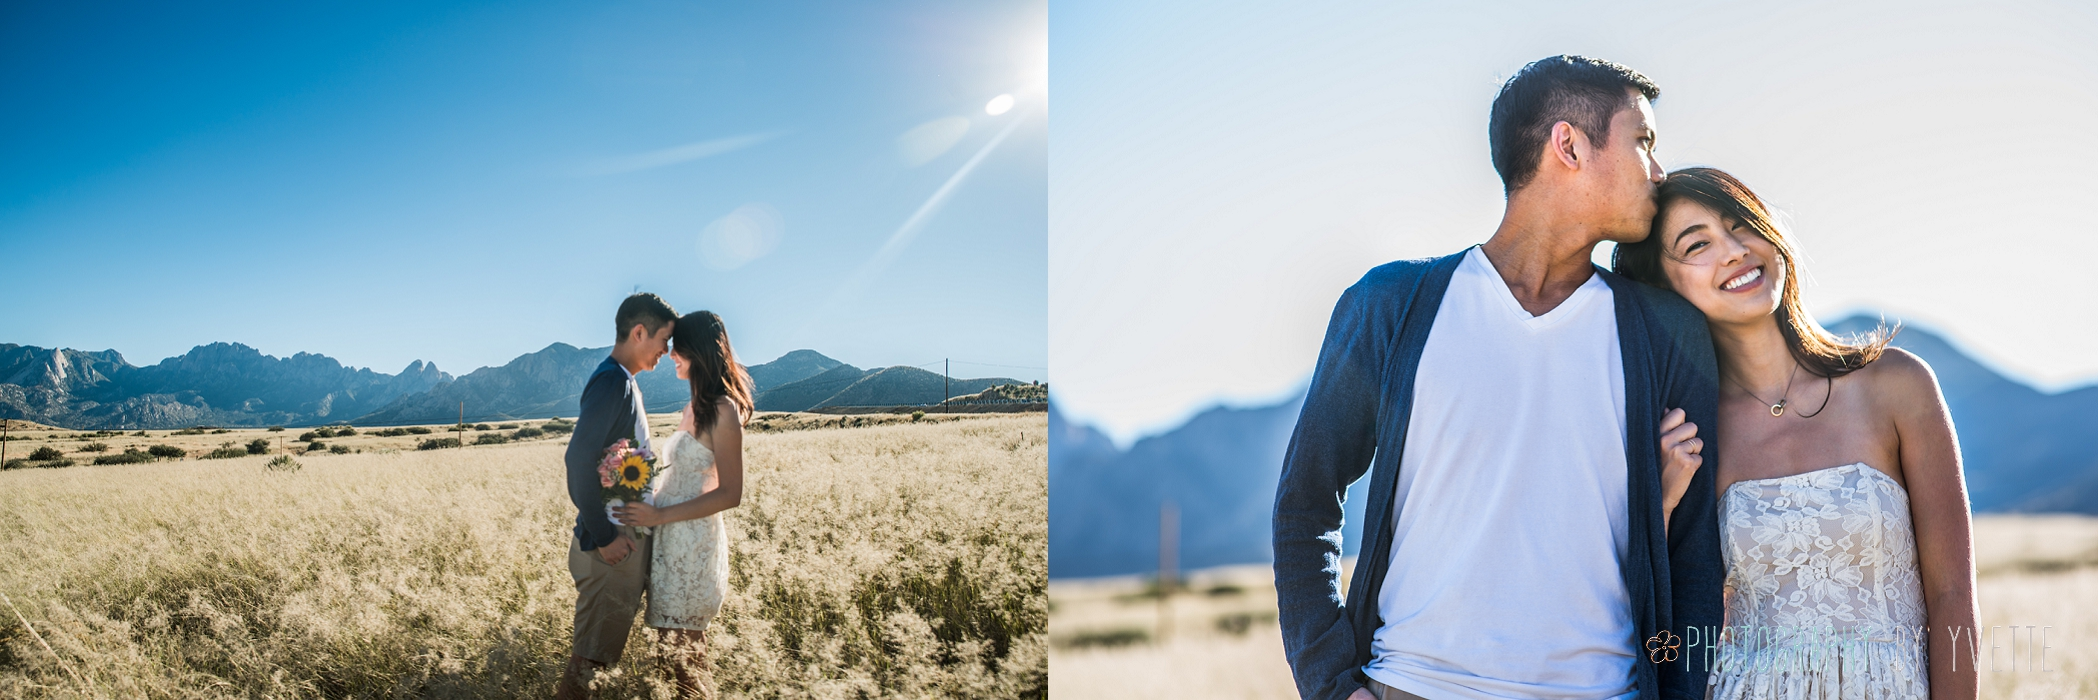 Las Cruces and El Paso Engagement Photographer